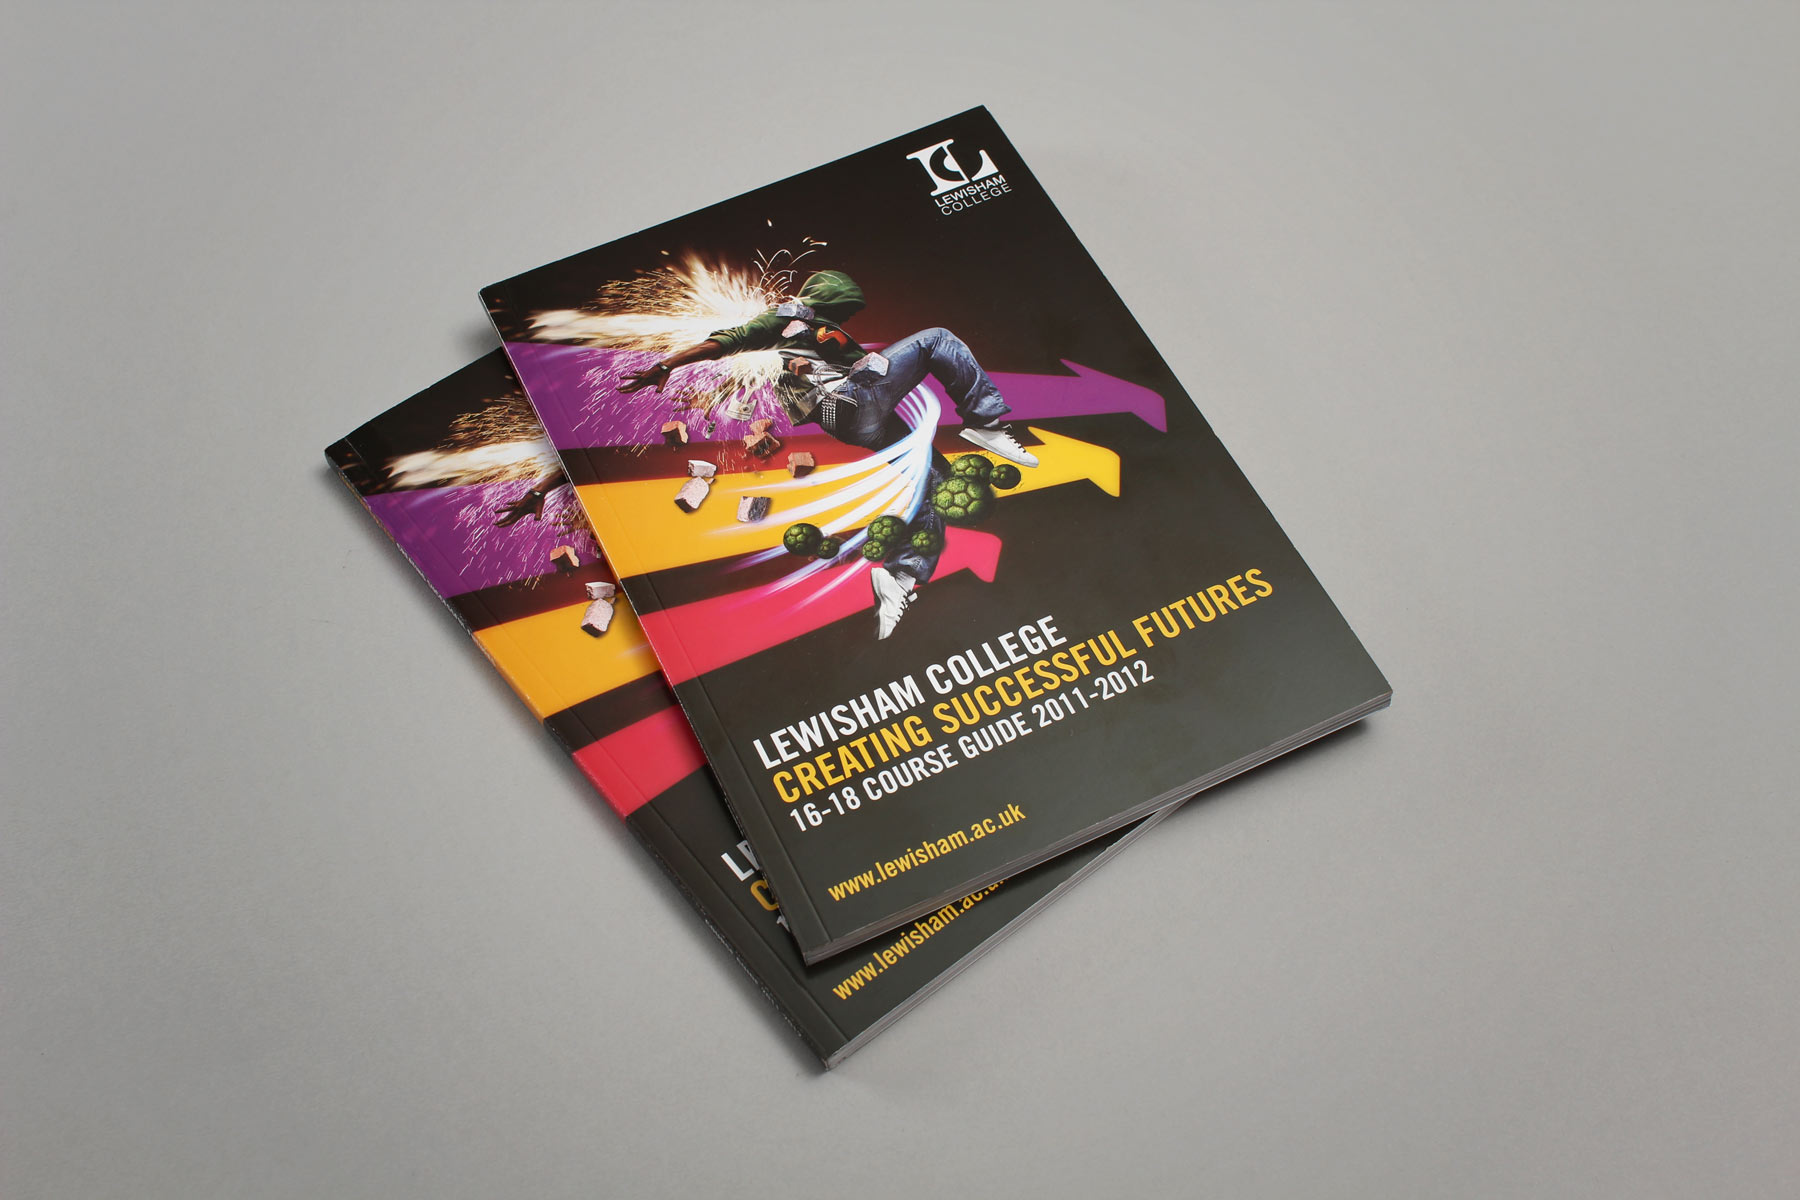 The course guides, whilst containing a different look year on year, all carry the same Lewisham brand values.